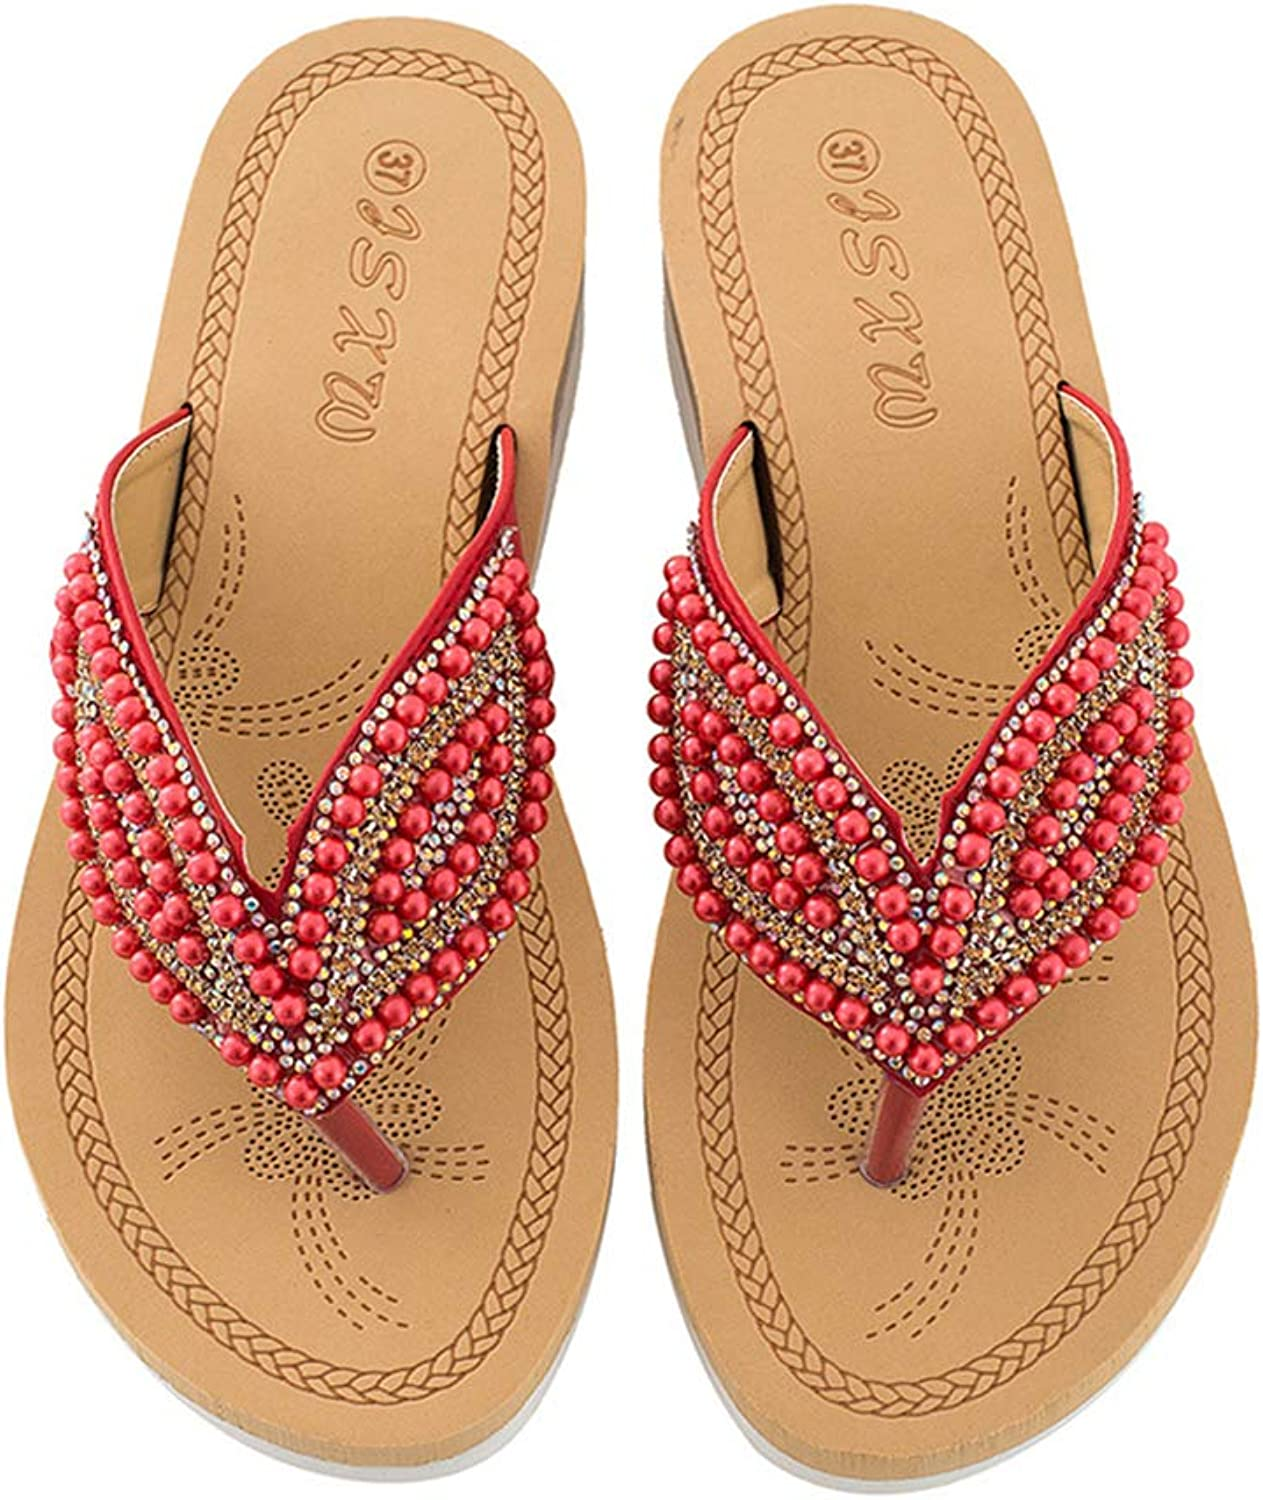 Navoku Beach Walking Beaded Flat Flip Flops Womens Thong Sandals